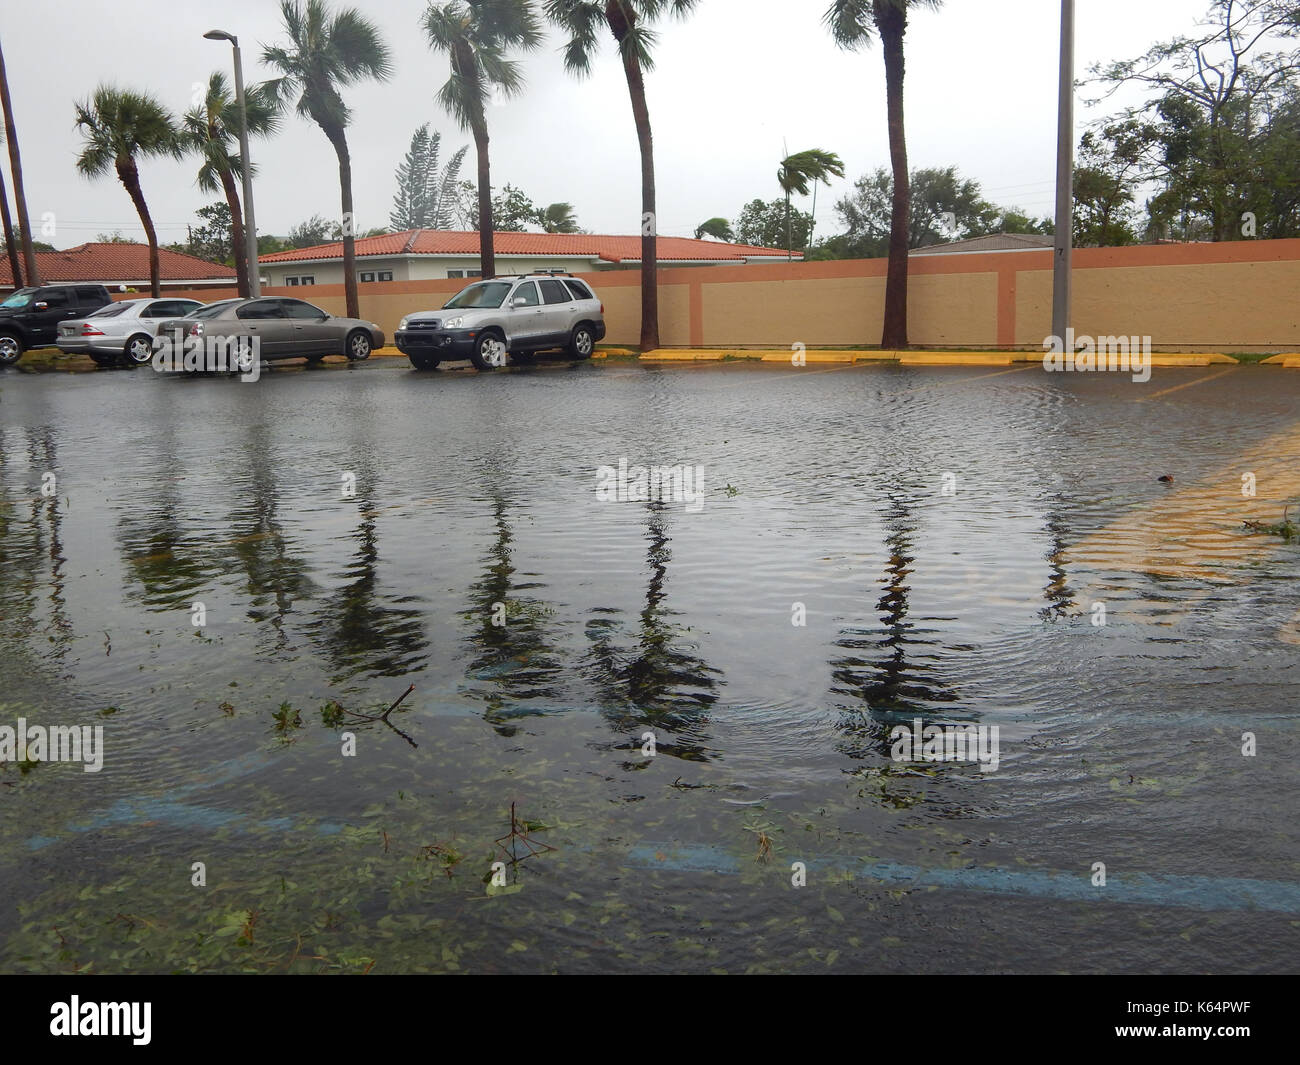 Miami, United States. 12th Sep, 2017. View of a parking lot after Hurricane Irma, in the Kendall district of Miami, Florida, USA, 11 September 2017. Florida has dawned and confirmed the bad omens given by meteorologists on the destructive power of Hurricane Irma, which has already claimed at least six deaths in Florida, three in Georgia and one in South Carolina and keeps more than 6.7 millions of properties in the dark. Credit: Latif Kassidi/EFE/Alamy Live News - Stock Image